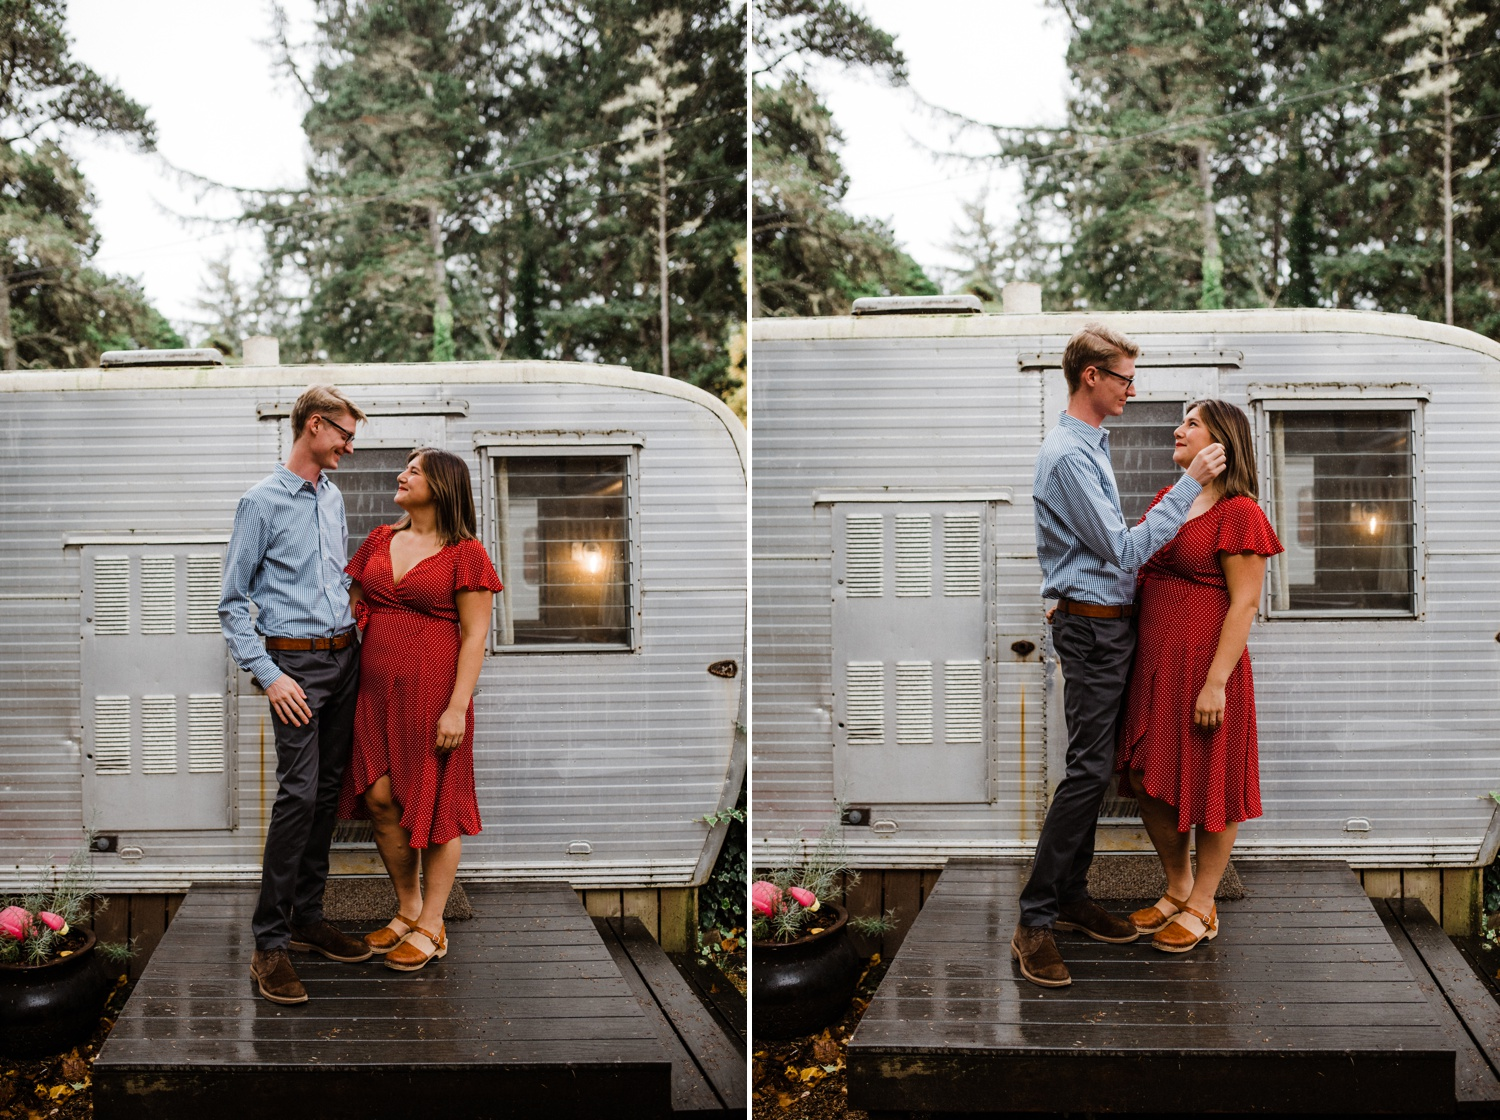 Cape_Disappointment_Engagement_Kailey_Alex_The_Foxes_Photography_027.jpg